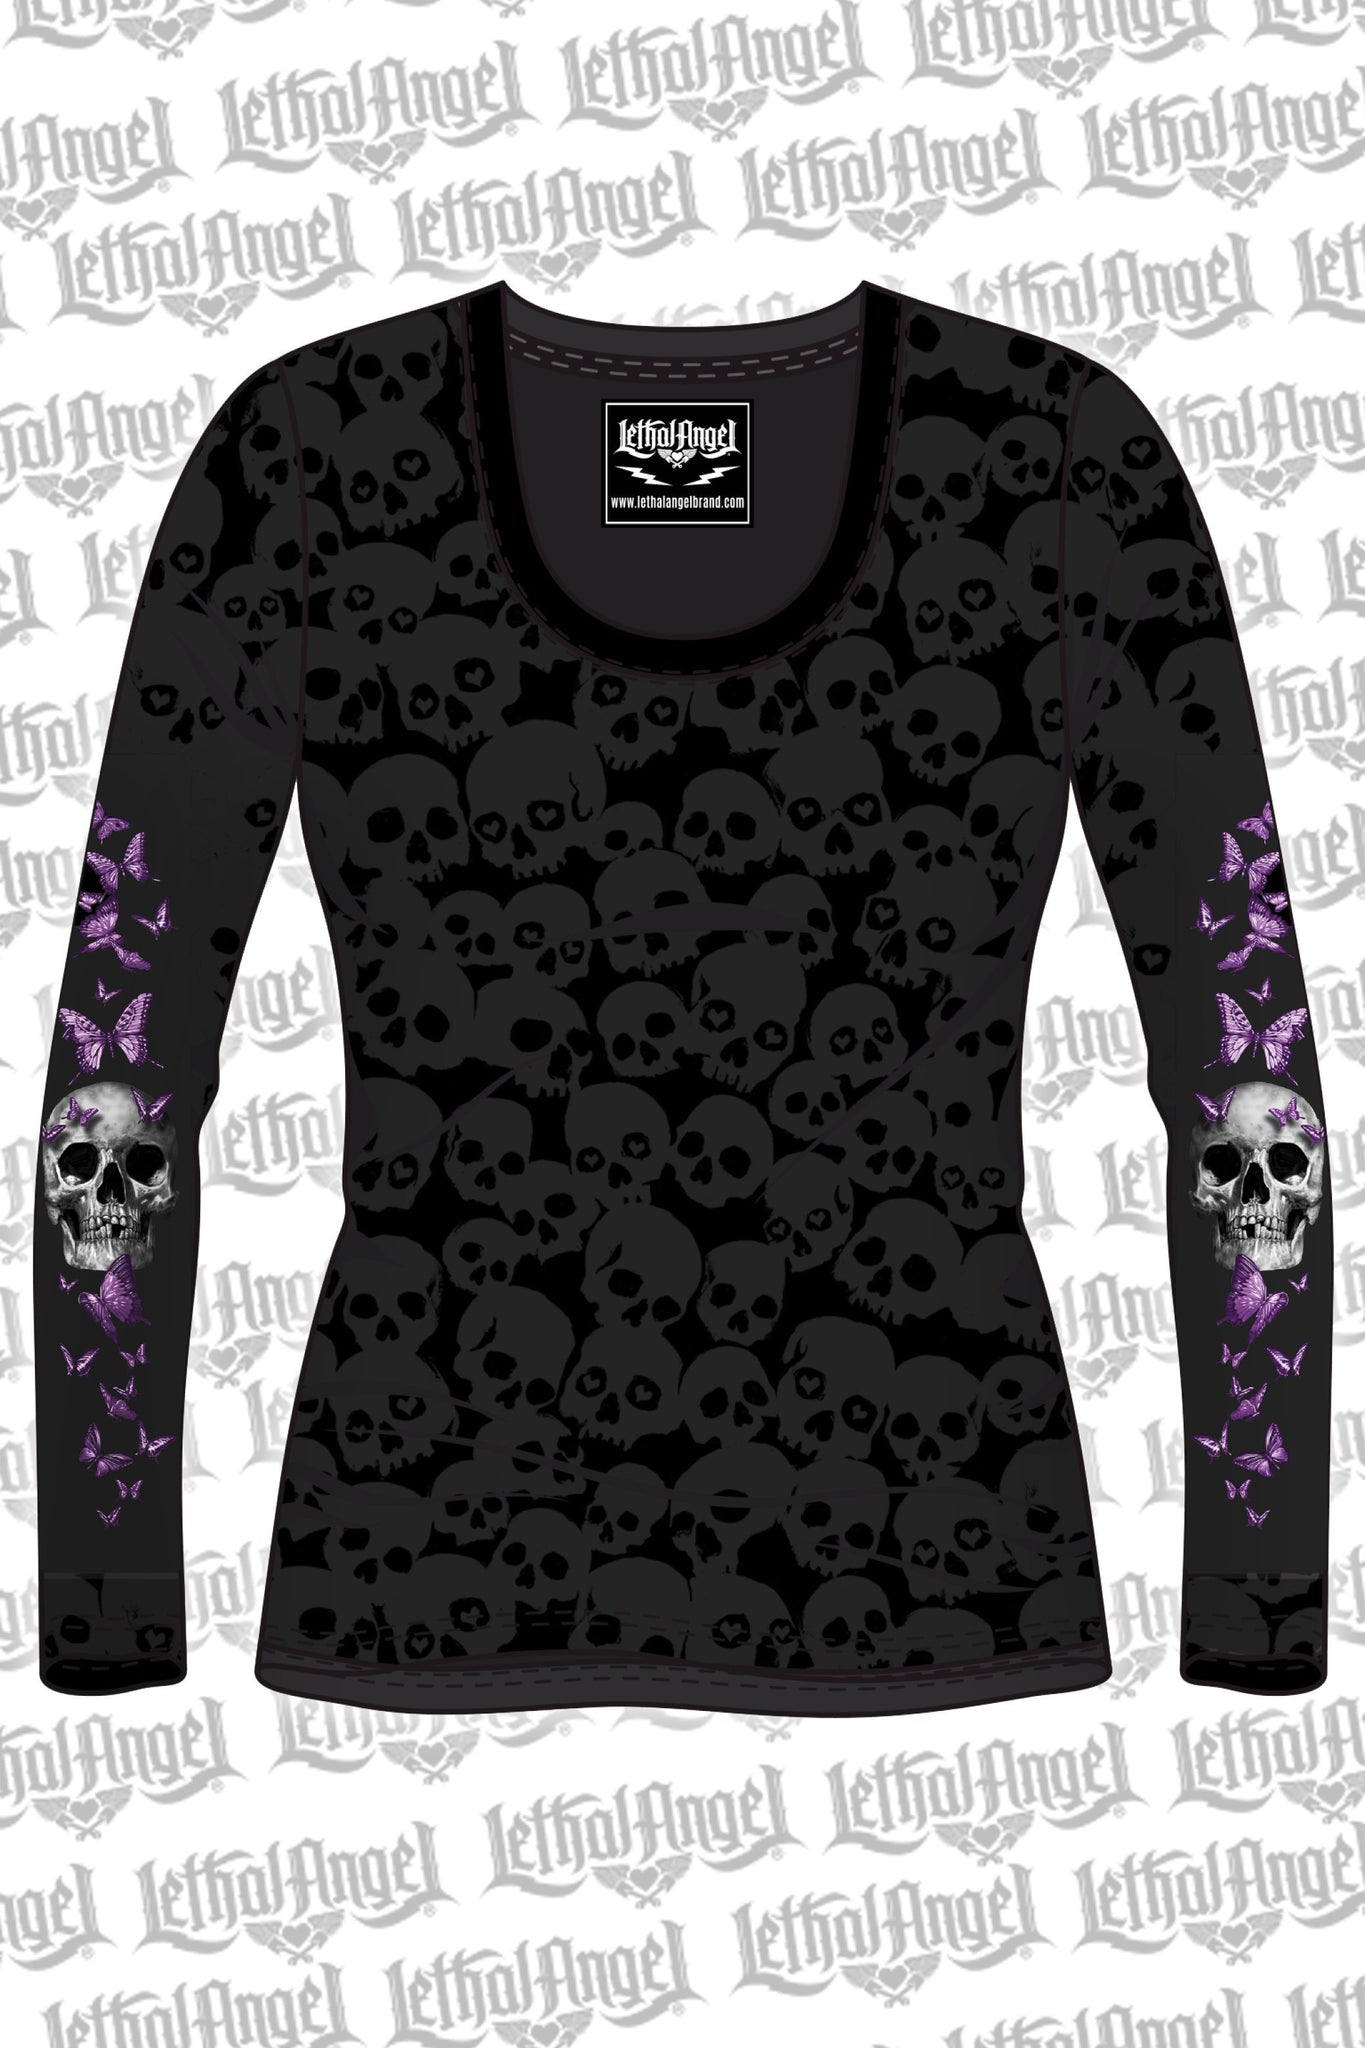 c455d7cc Butterfly Skull Burnout Long Sleeve – LETHAL ANGEL